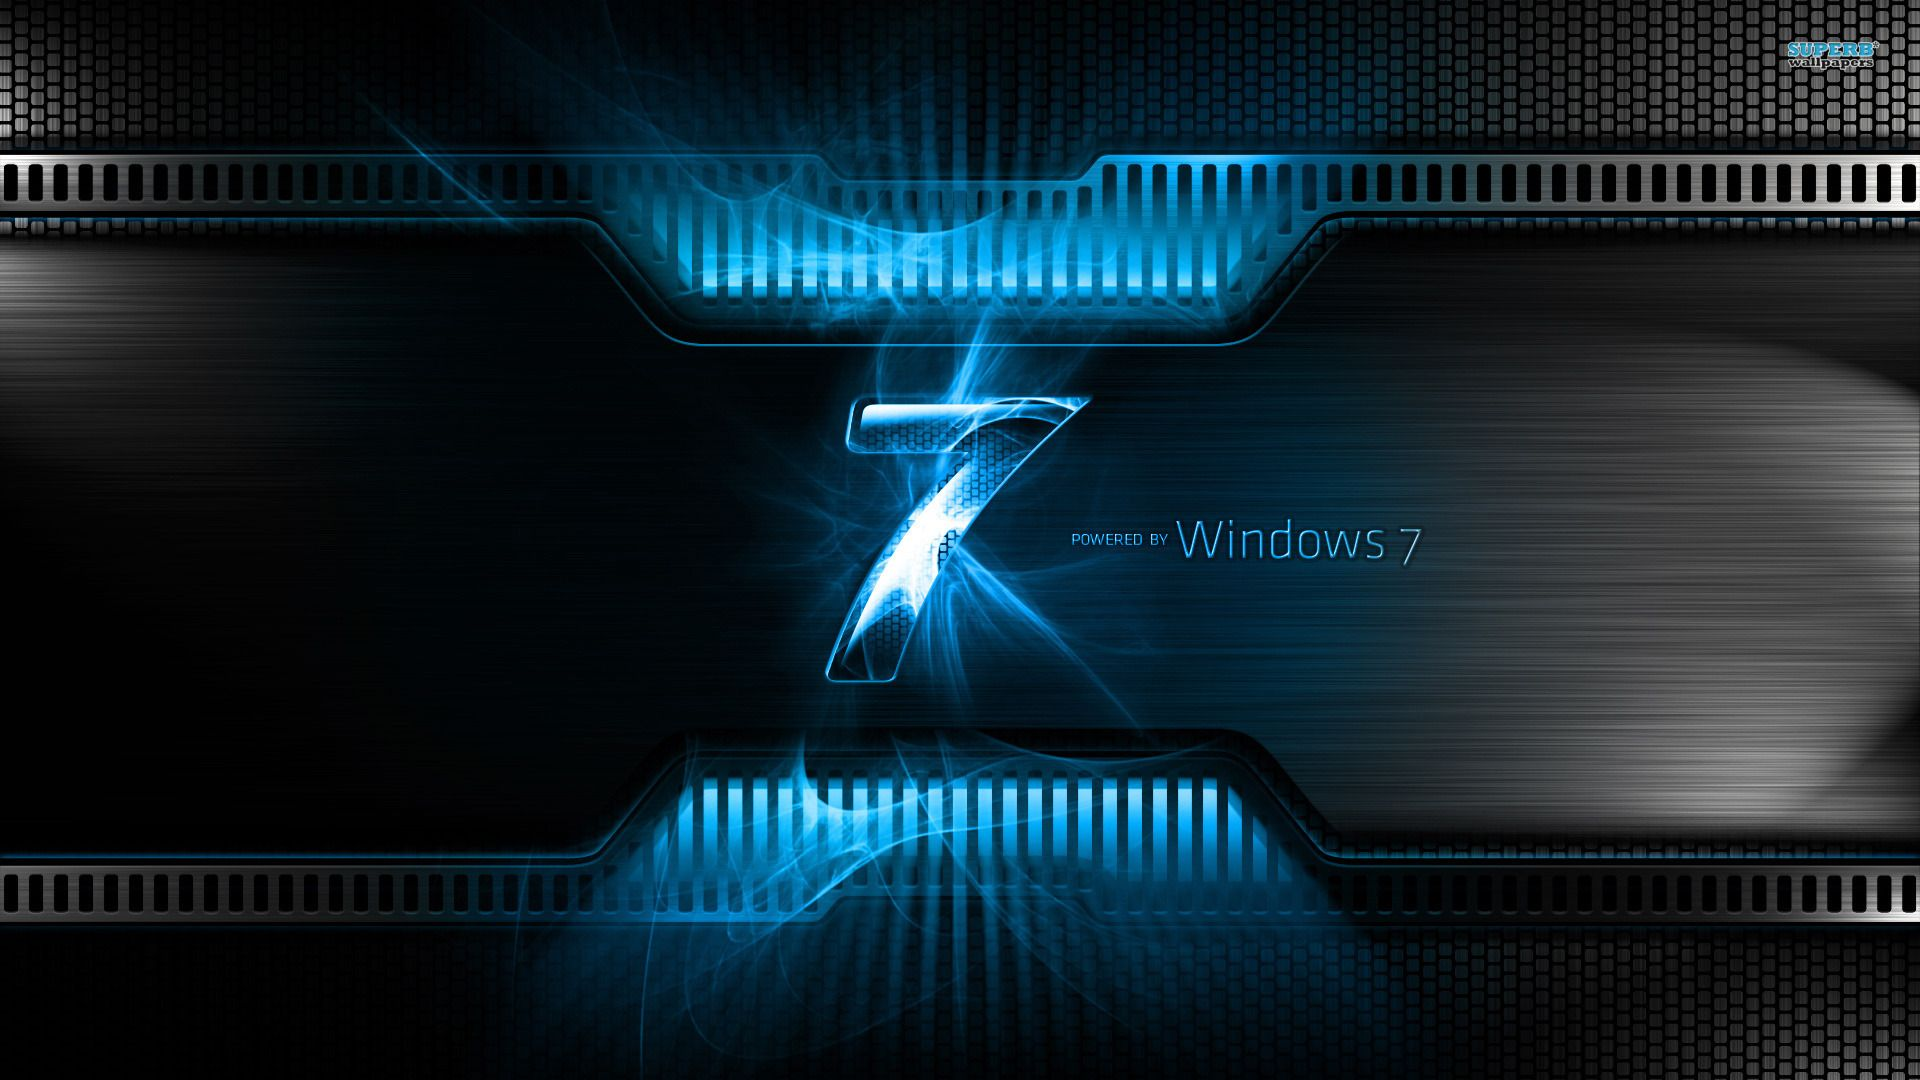 Ewallpapershub Provide The Latest Image Gallery Of Windows 7 Default Wallpapers You Can Download